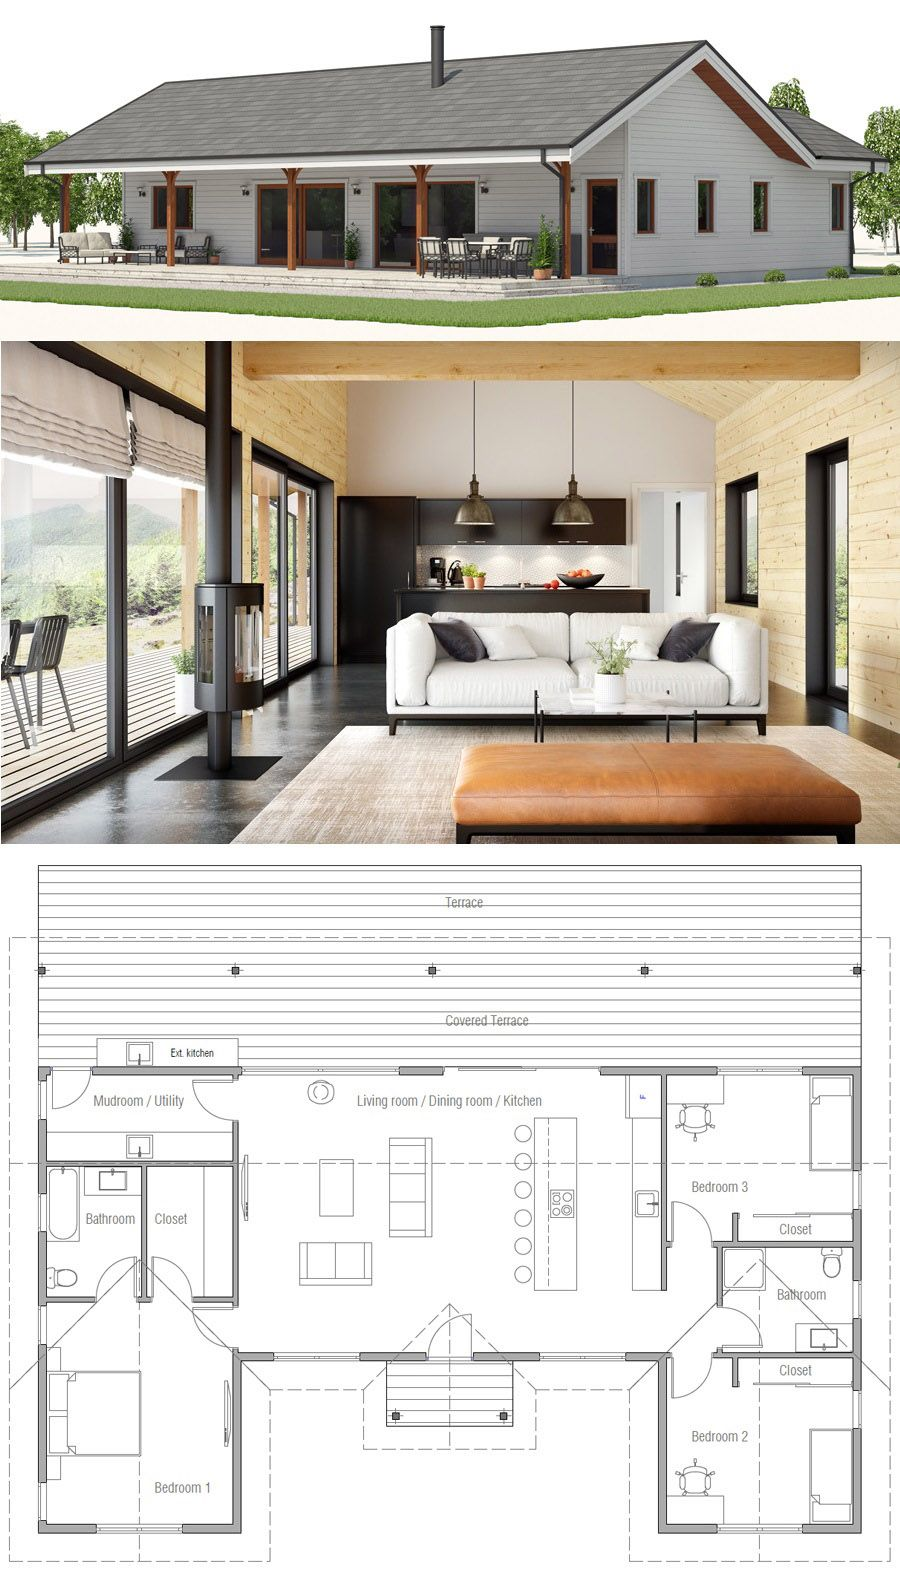 Small house plan home plans designs housedesign adhouseplans architecture homeplan homeplans houseplan houseplans also rh in pinterest